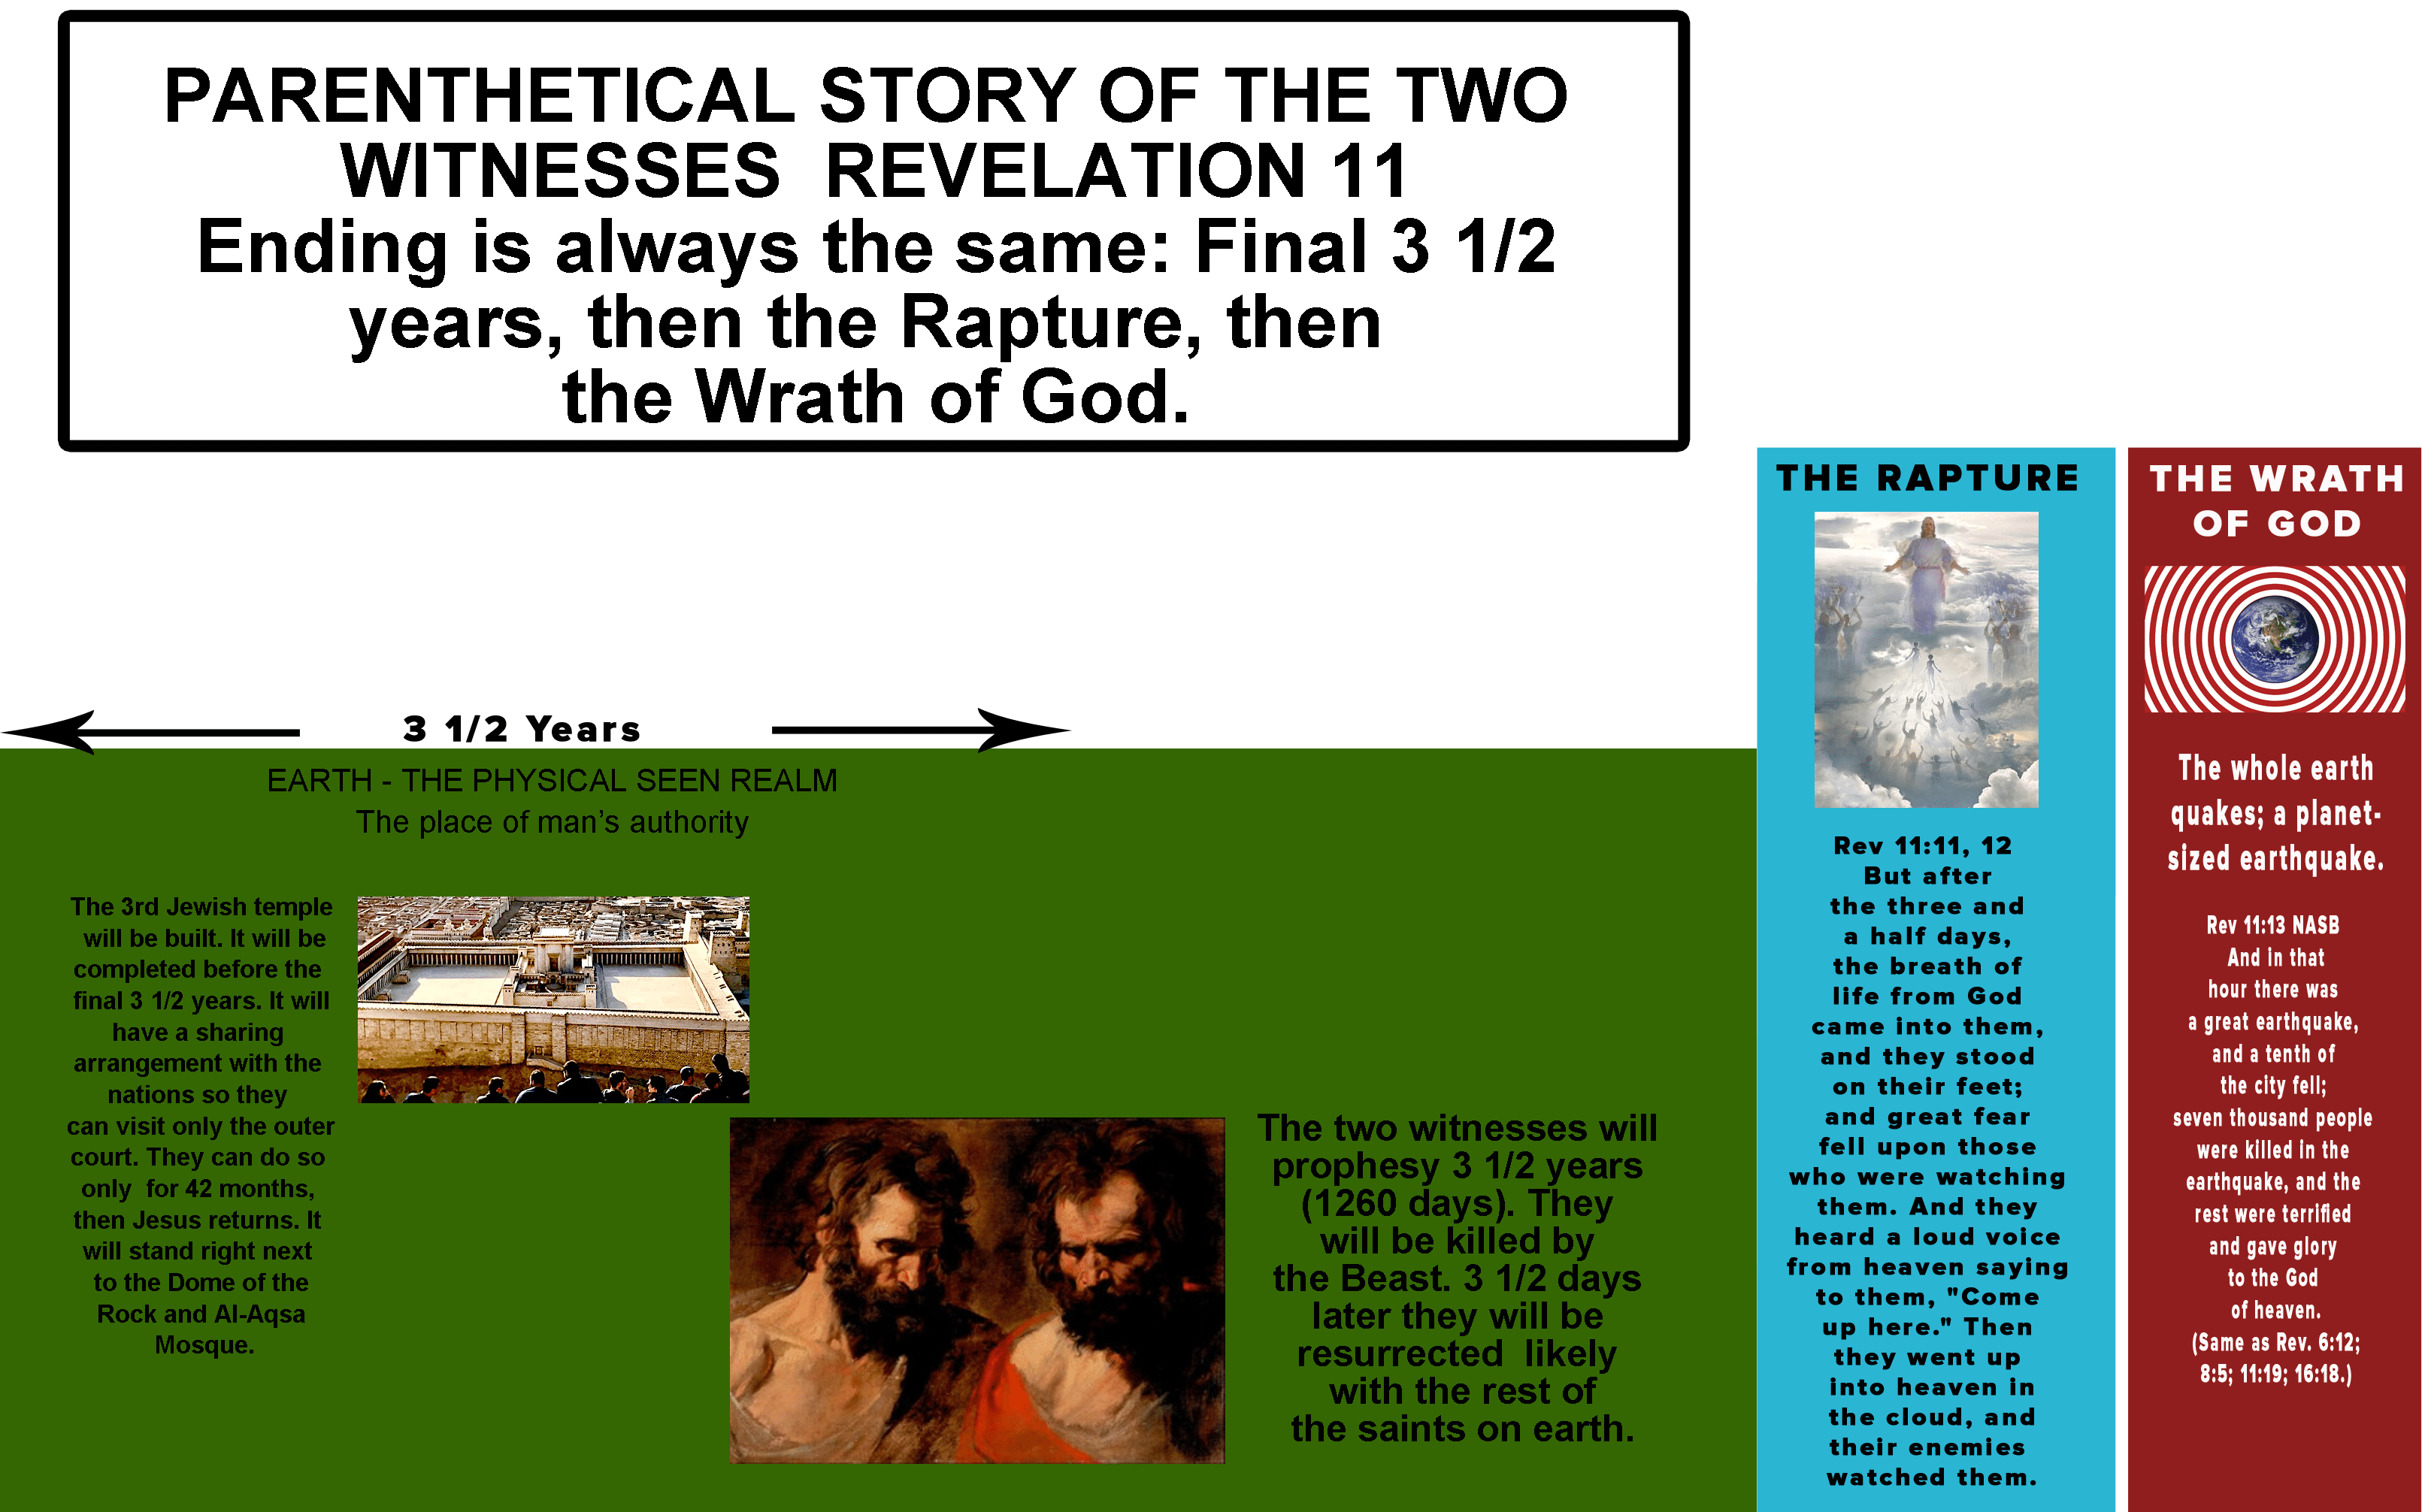 Revelation 11 Parenthetical account of Two Witnesses